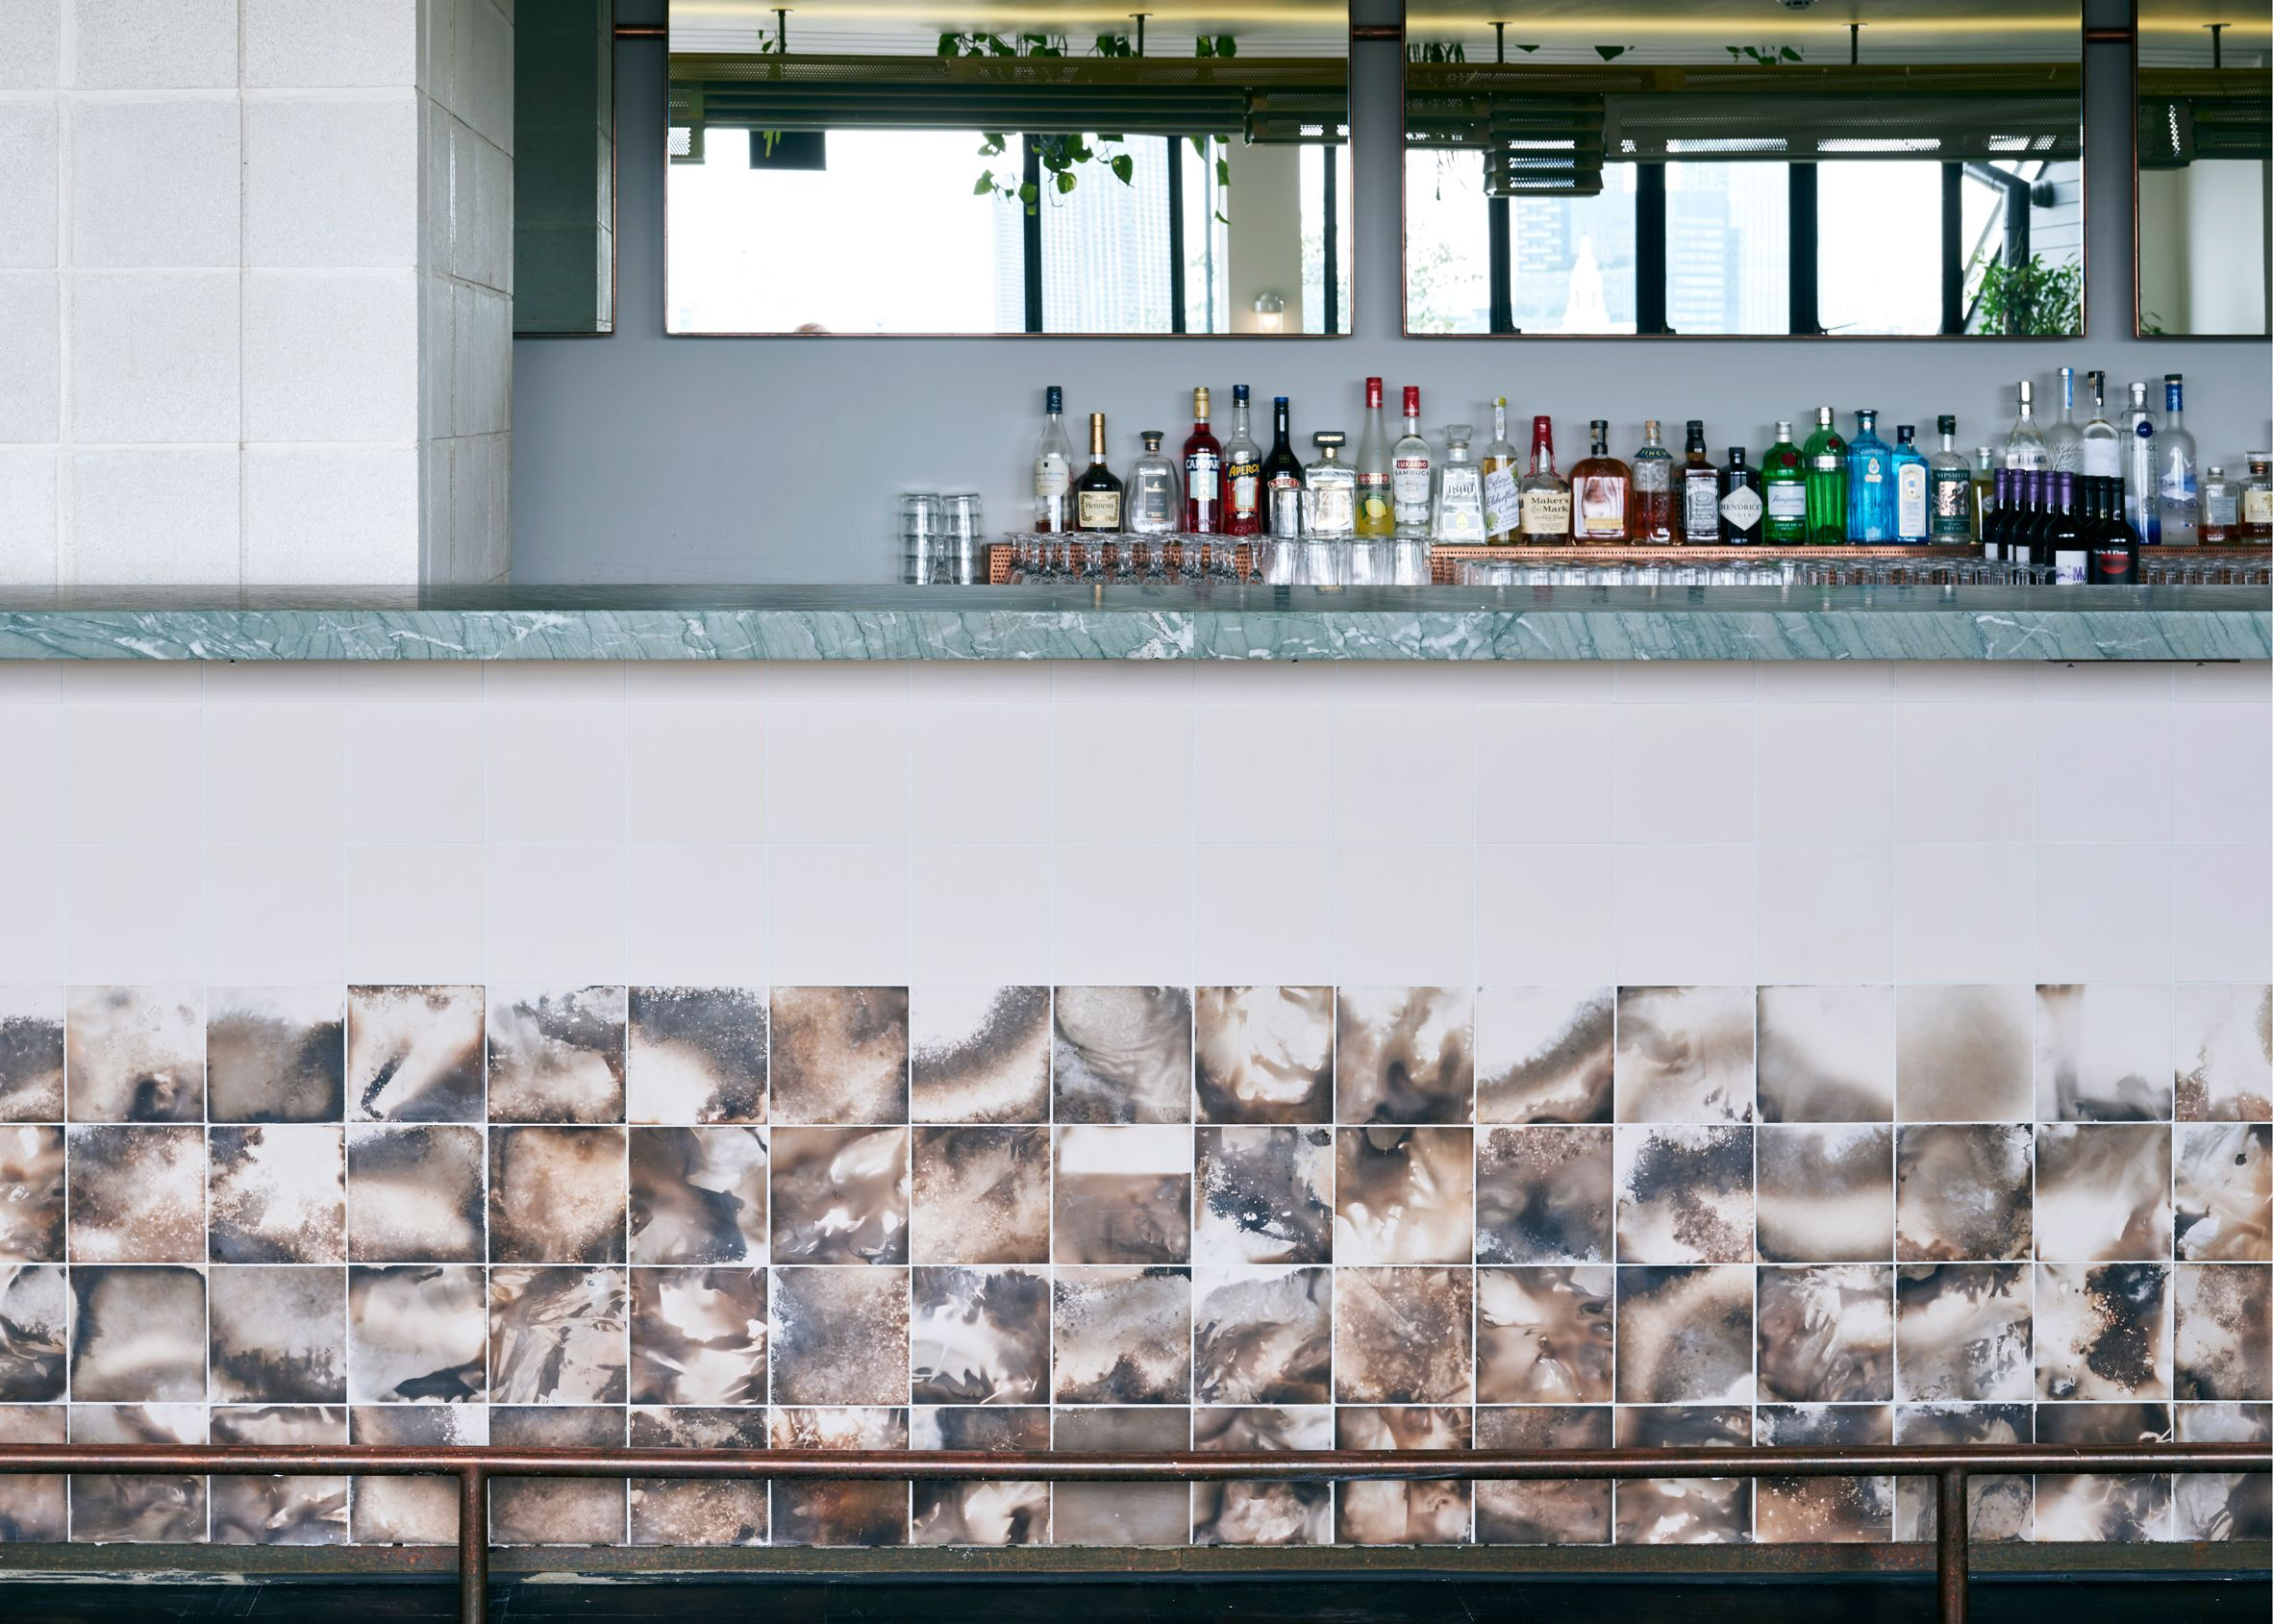 Turner prize winning collective assemble has produced ceramic tiles turner prize winning collective assemble has produced ceramic tiles that were smoked in dailygadgetfo Images